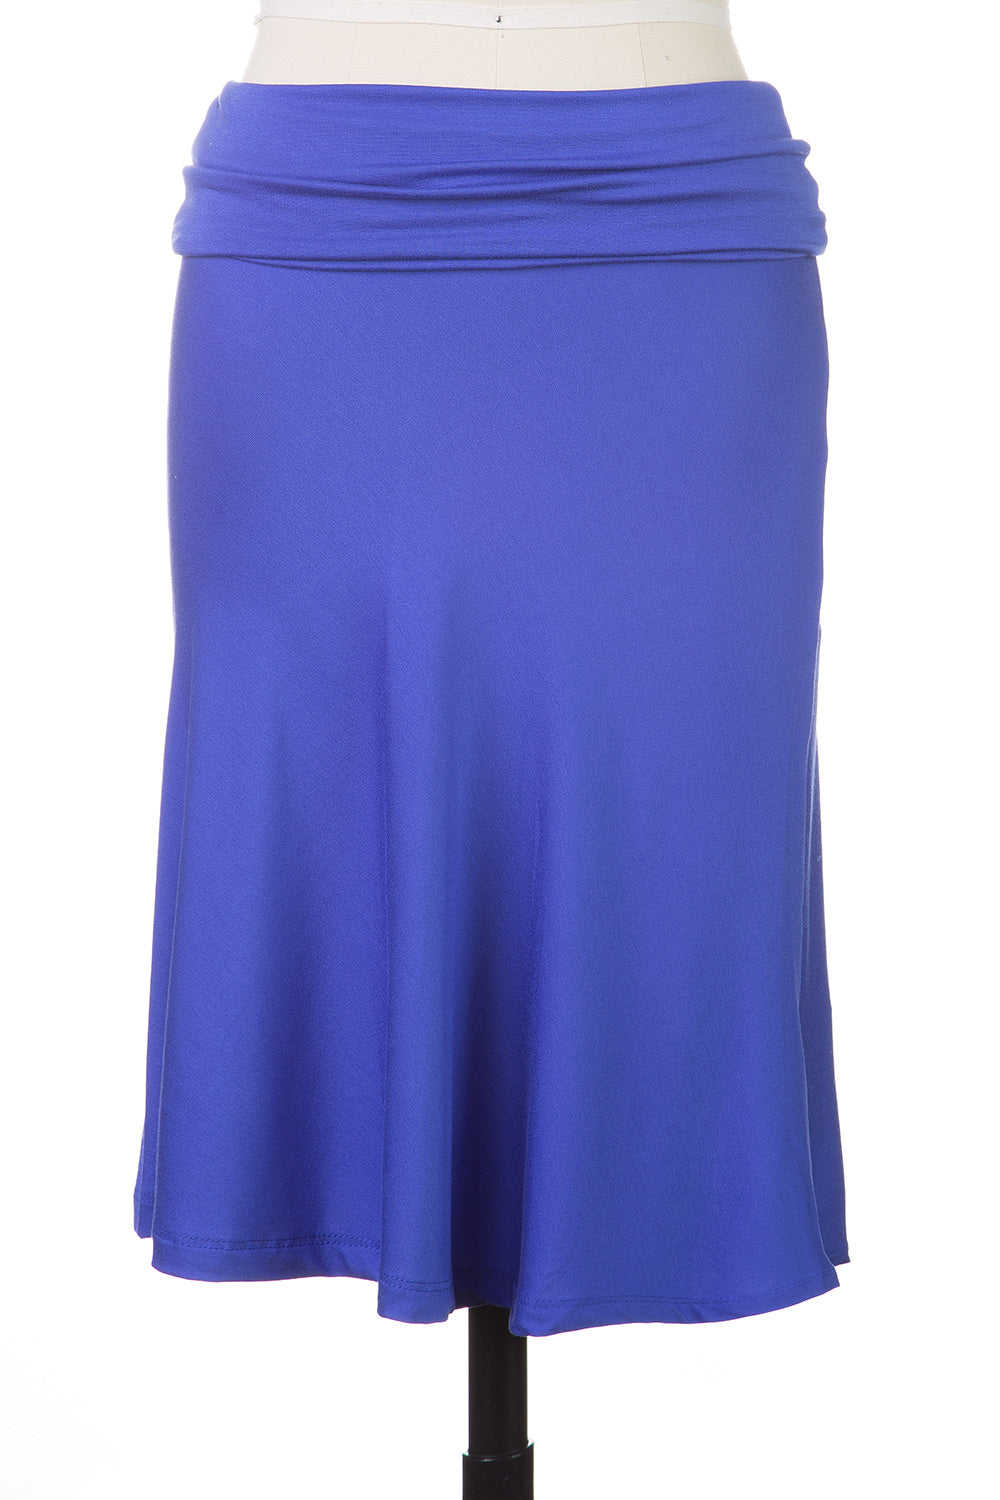 Type 1 Blue Light Skirt